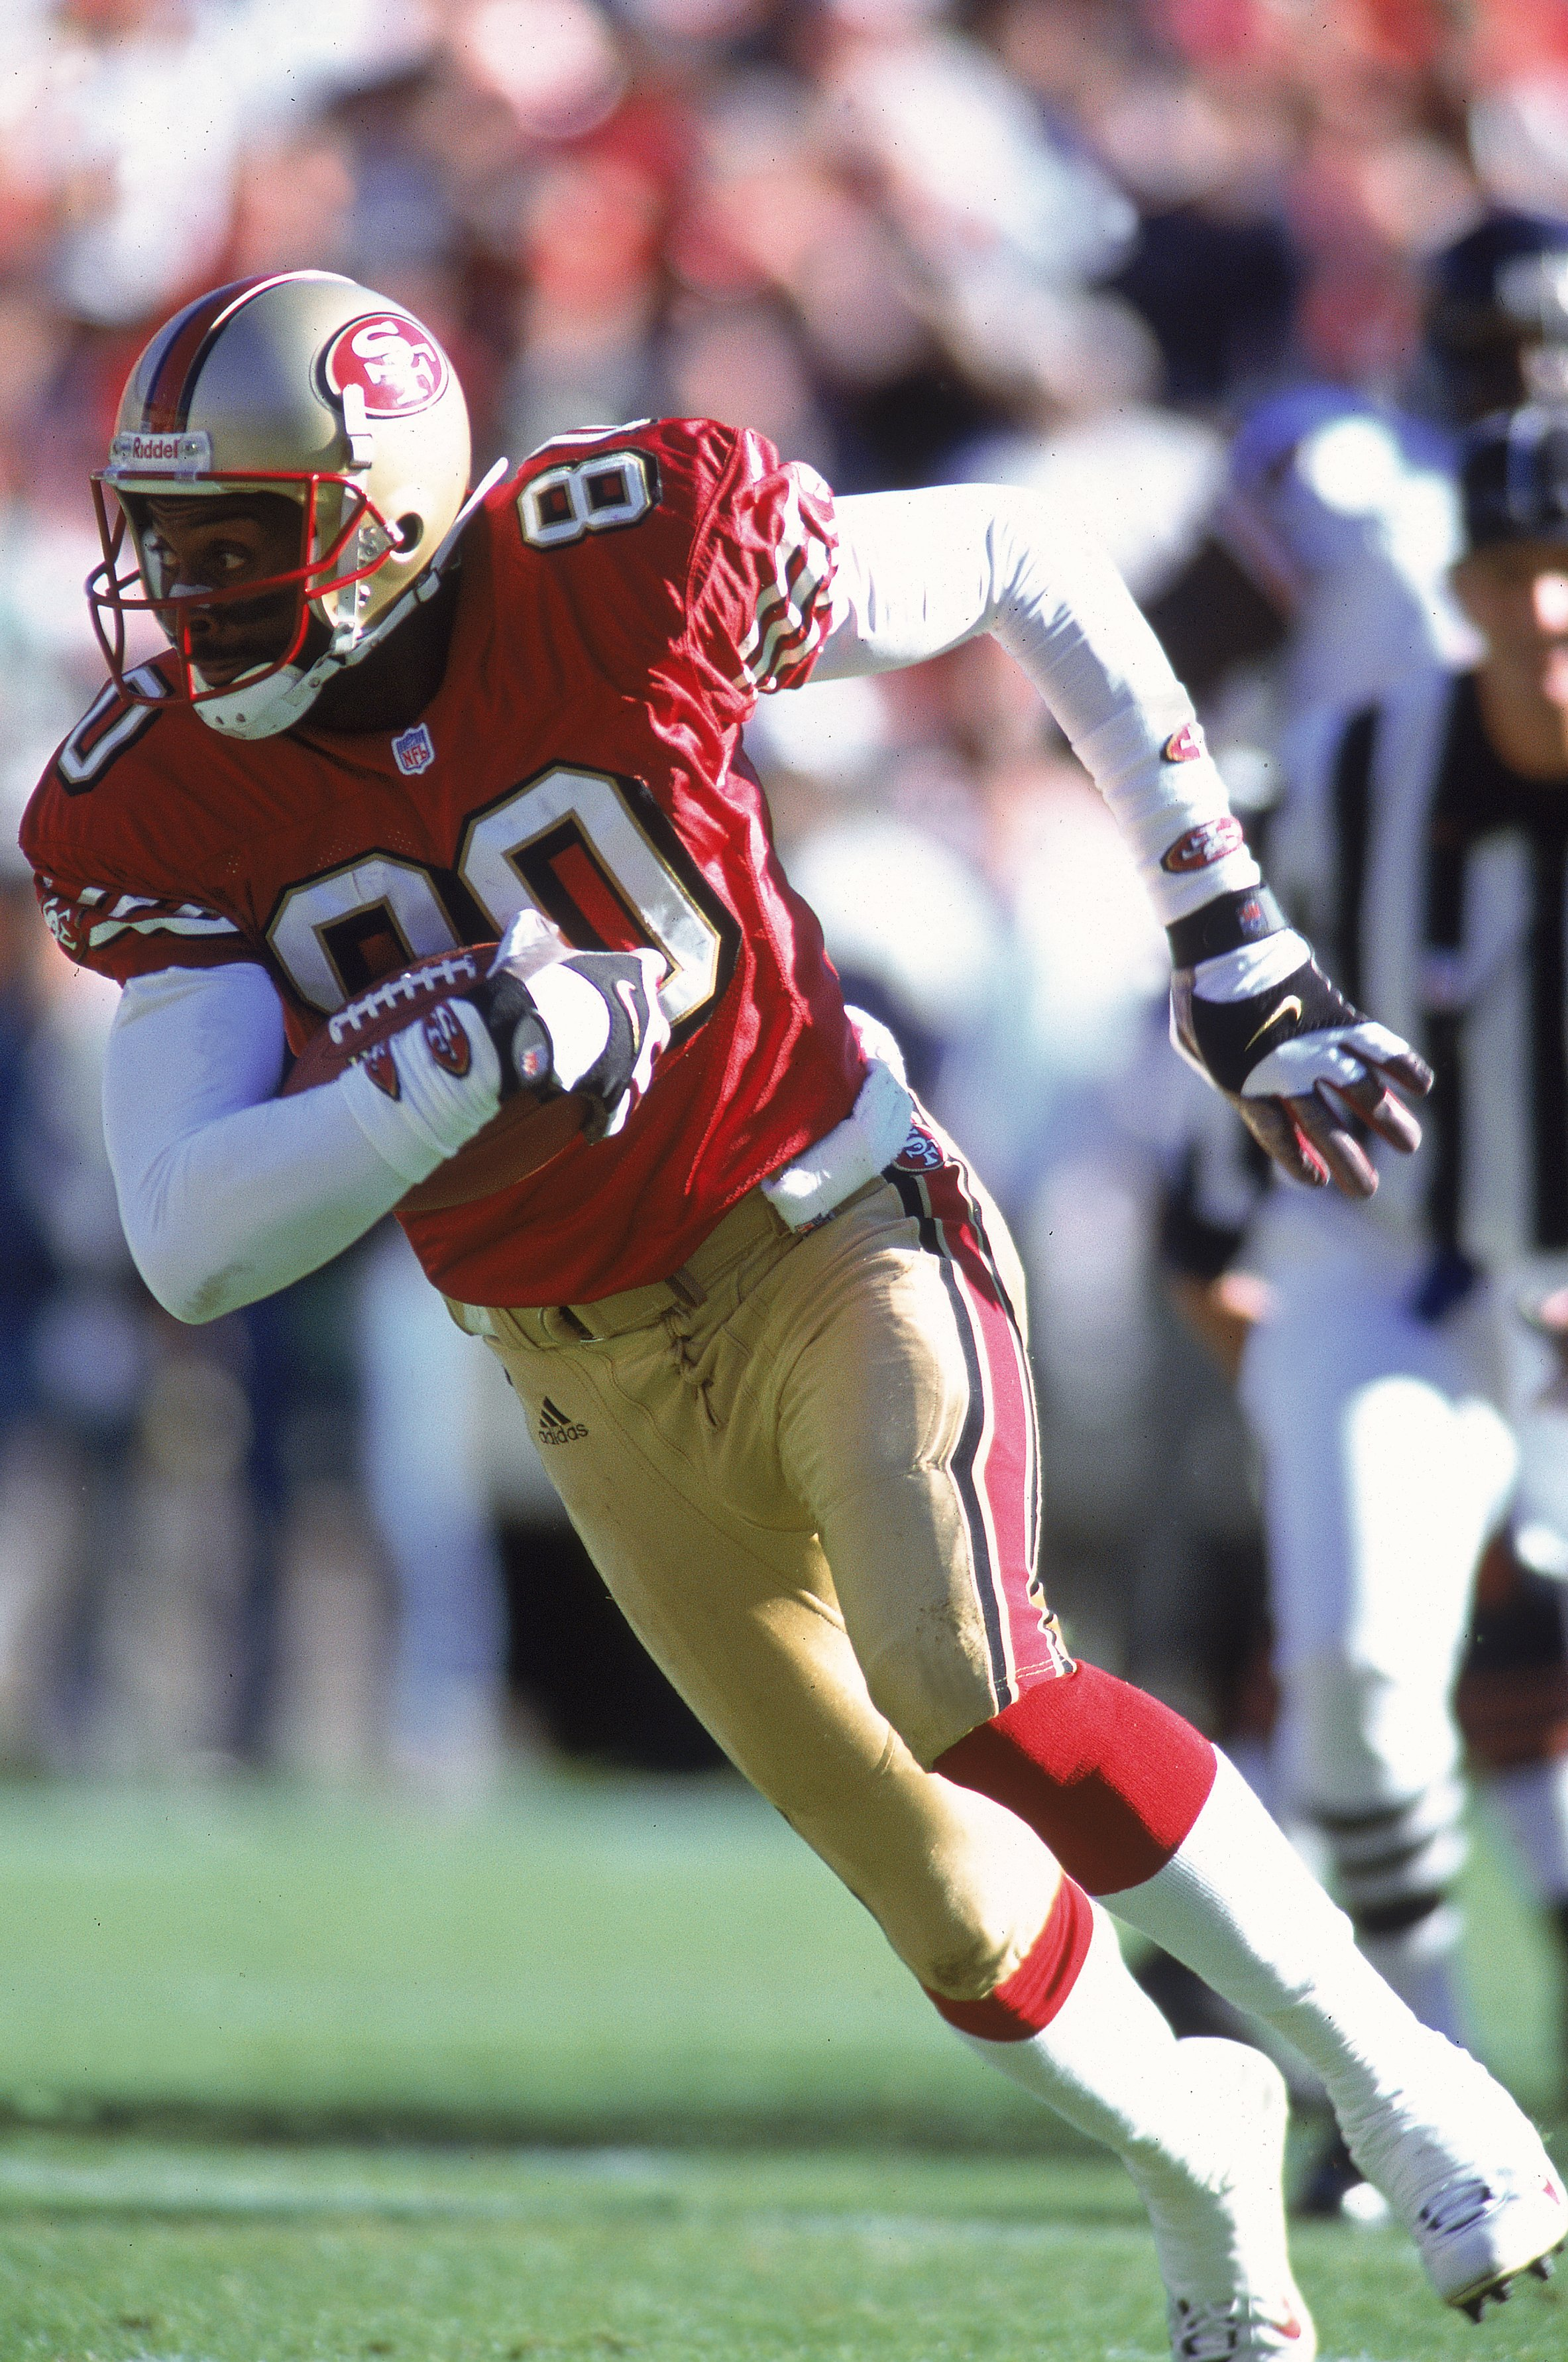 17 Dec 2000:  Jerry Rice #80 of the San Francisco 49ers runs during the game against the Chicago Bears at 3Com Park in San Francisco, California. The 49ers defeated the Bears 17-0.Mandatory Credit: Jed Jacobsohn  /Allsport